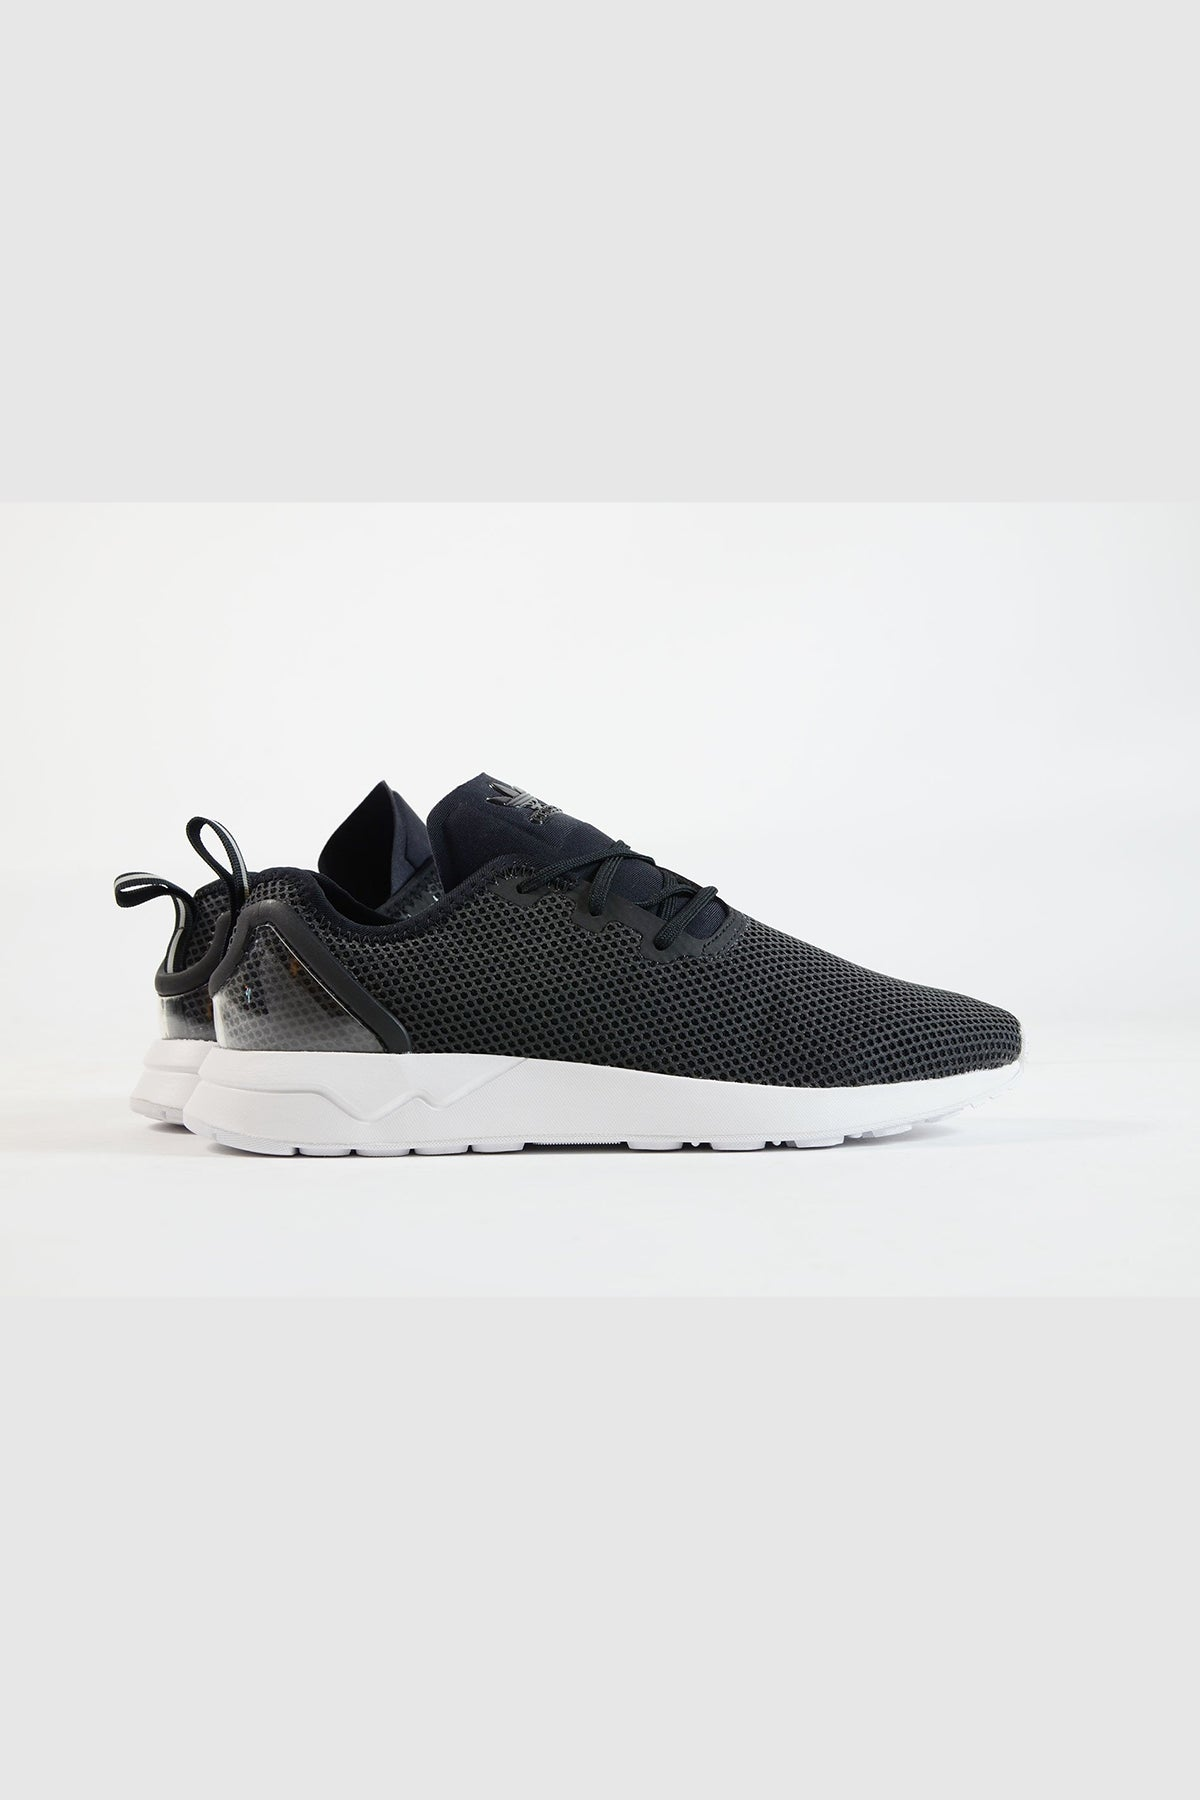 f1d0dc560cfd Adidas - Zx Flux Racer Asymmetrical (Black  White) - Sneakerworld